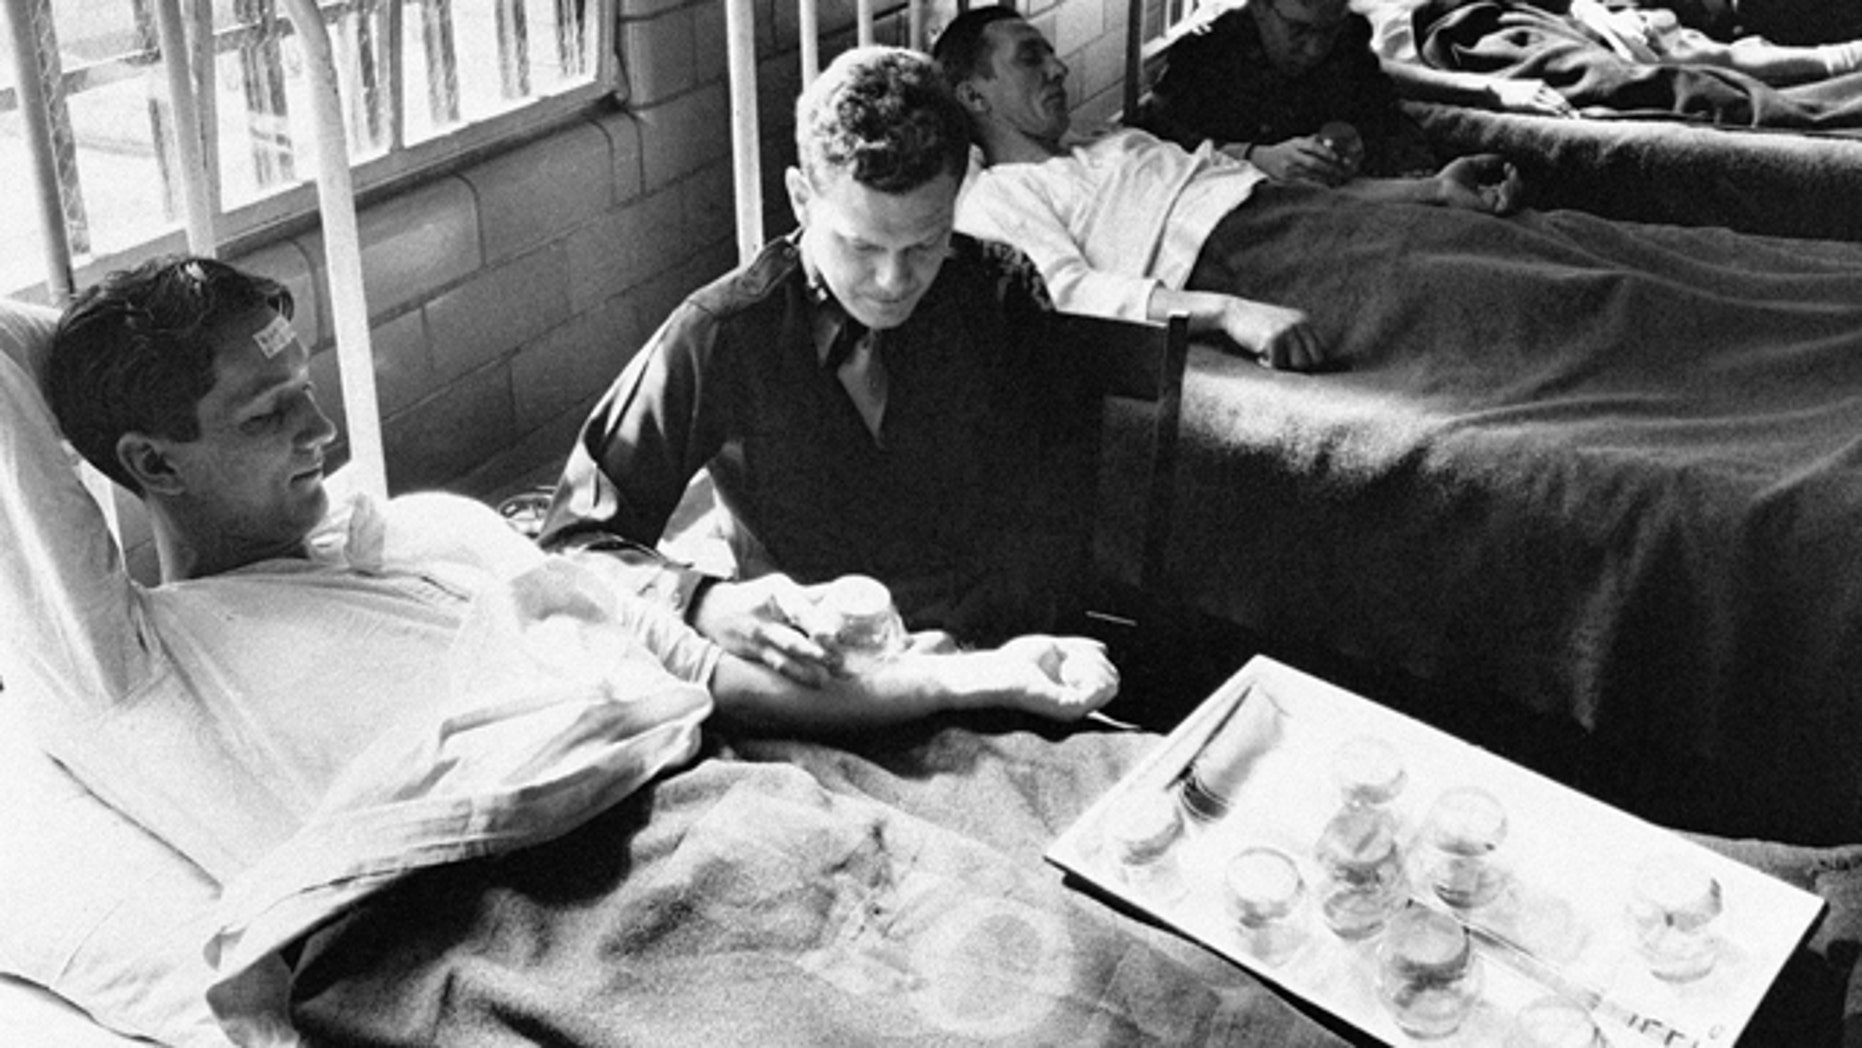 In this June 25, 1945 picture, army doctors expose patients to malaria-carrying mosquitoes in the malaria ward at Stateville Penitentiary in Crest Hill, Ill.